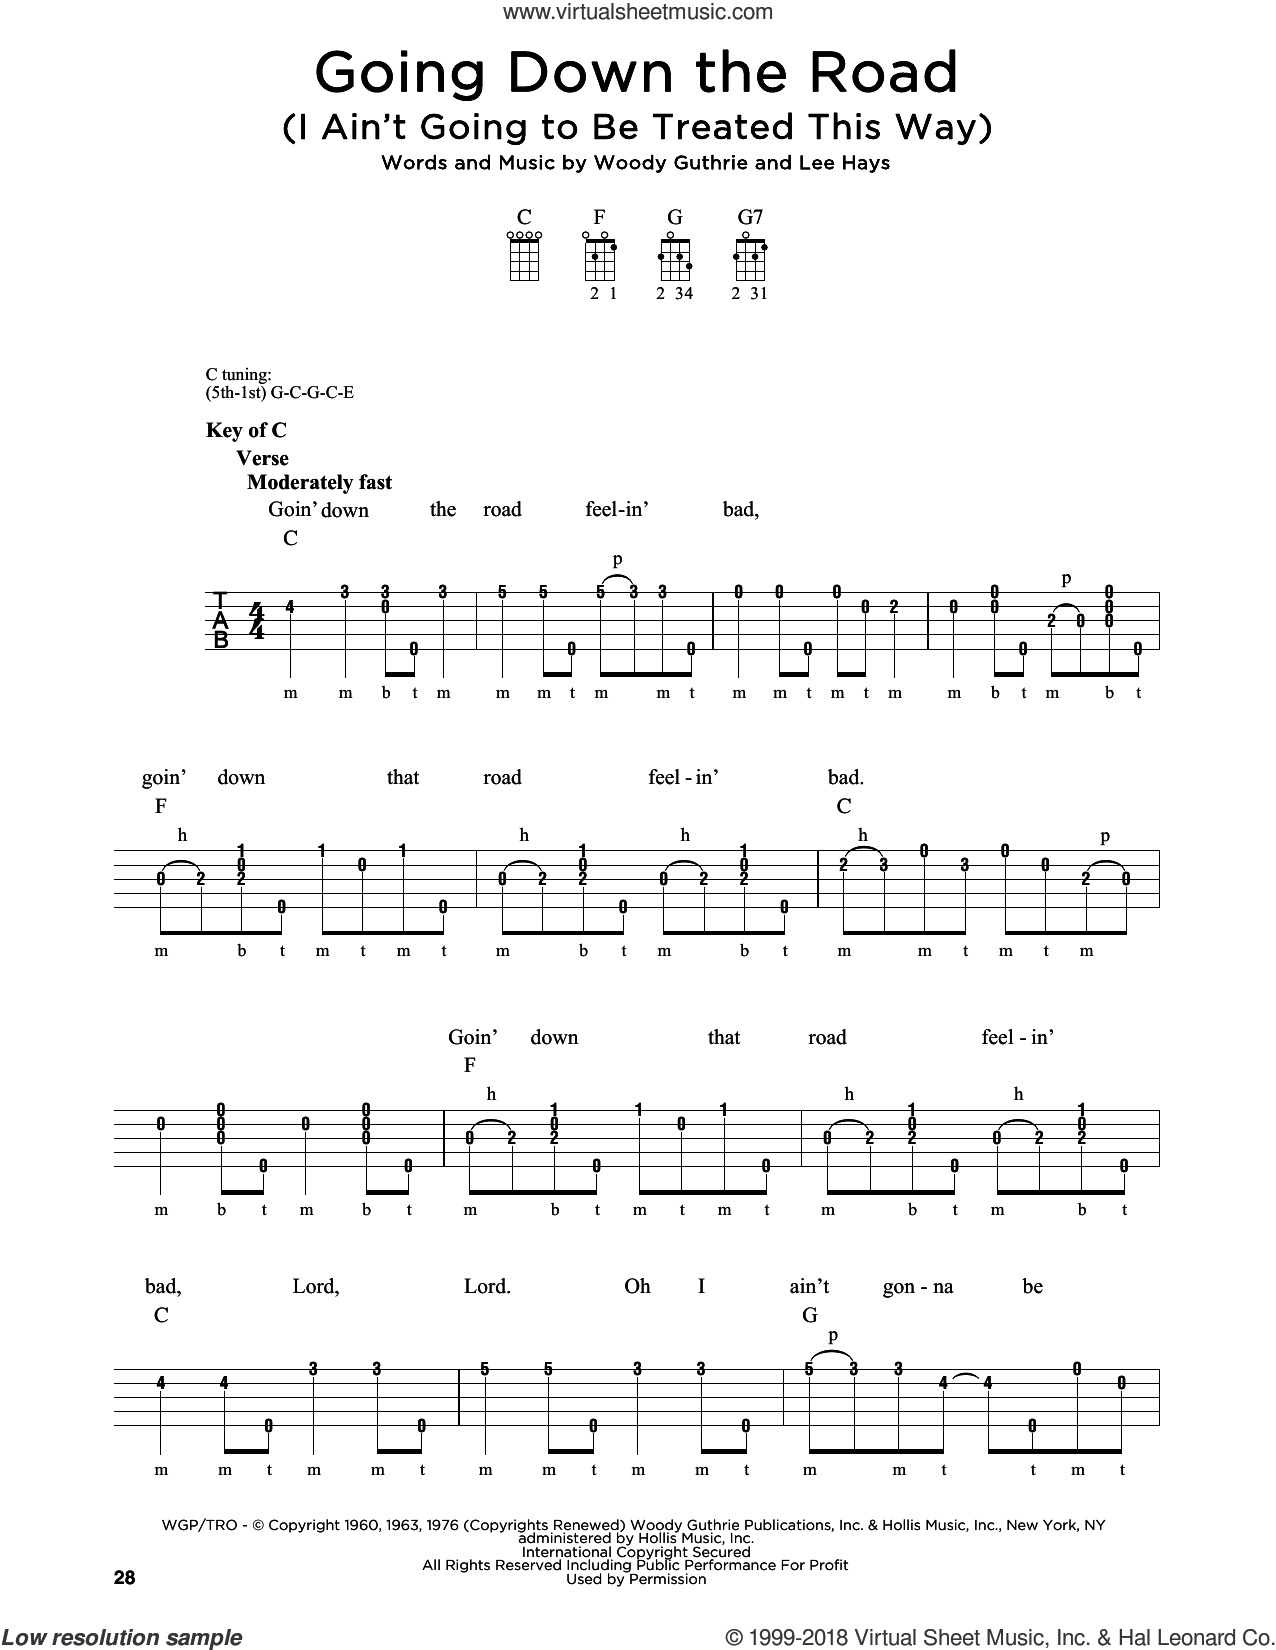 Going Down The Road (I Ain't Going To Be Treated This Way) sheet music for banjo solo by Lee Hays, Greg Cahill and Woody Guthrie. Score Image Preview.